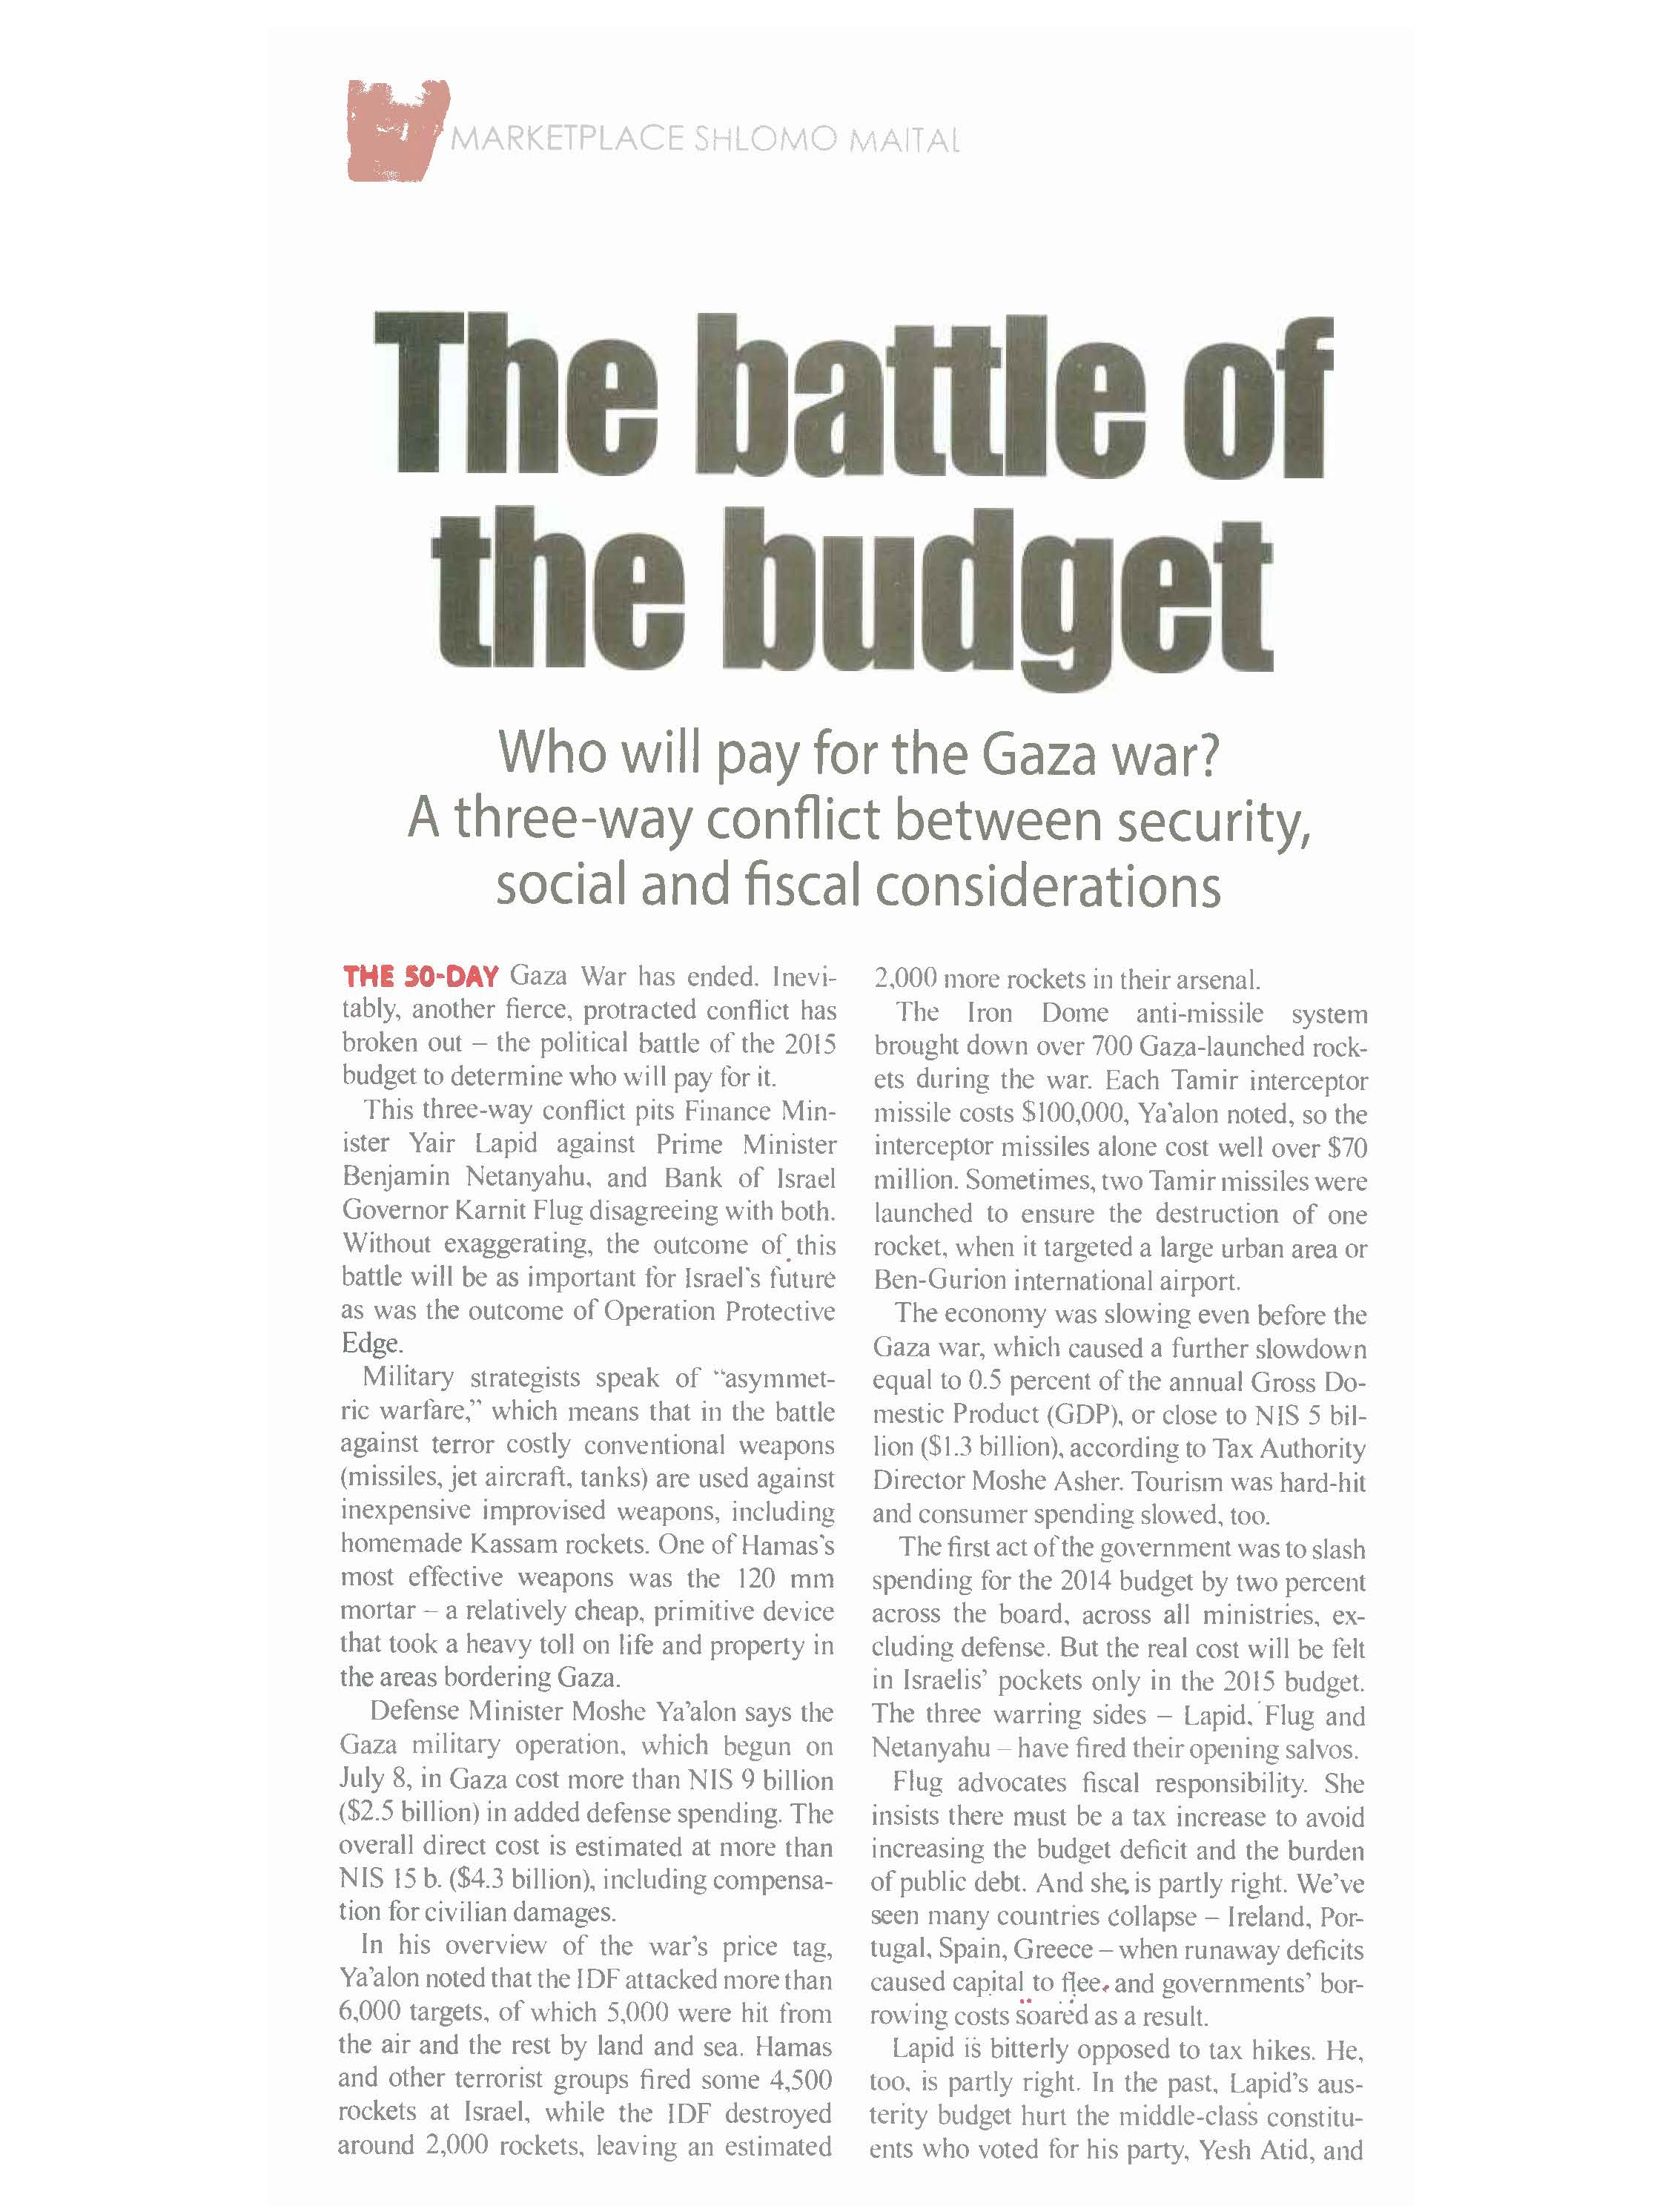 The battle of the budget